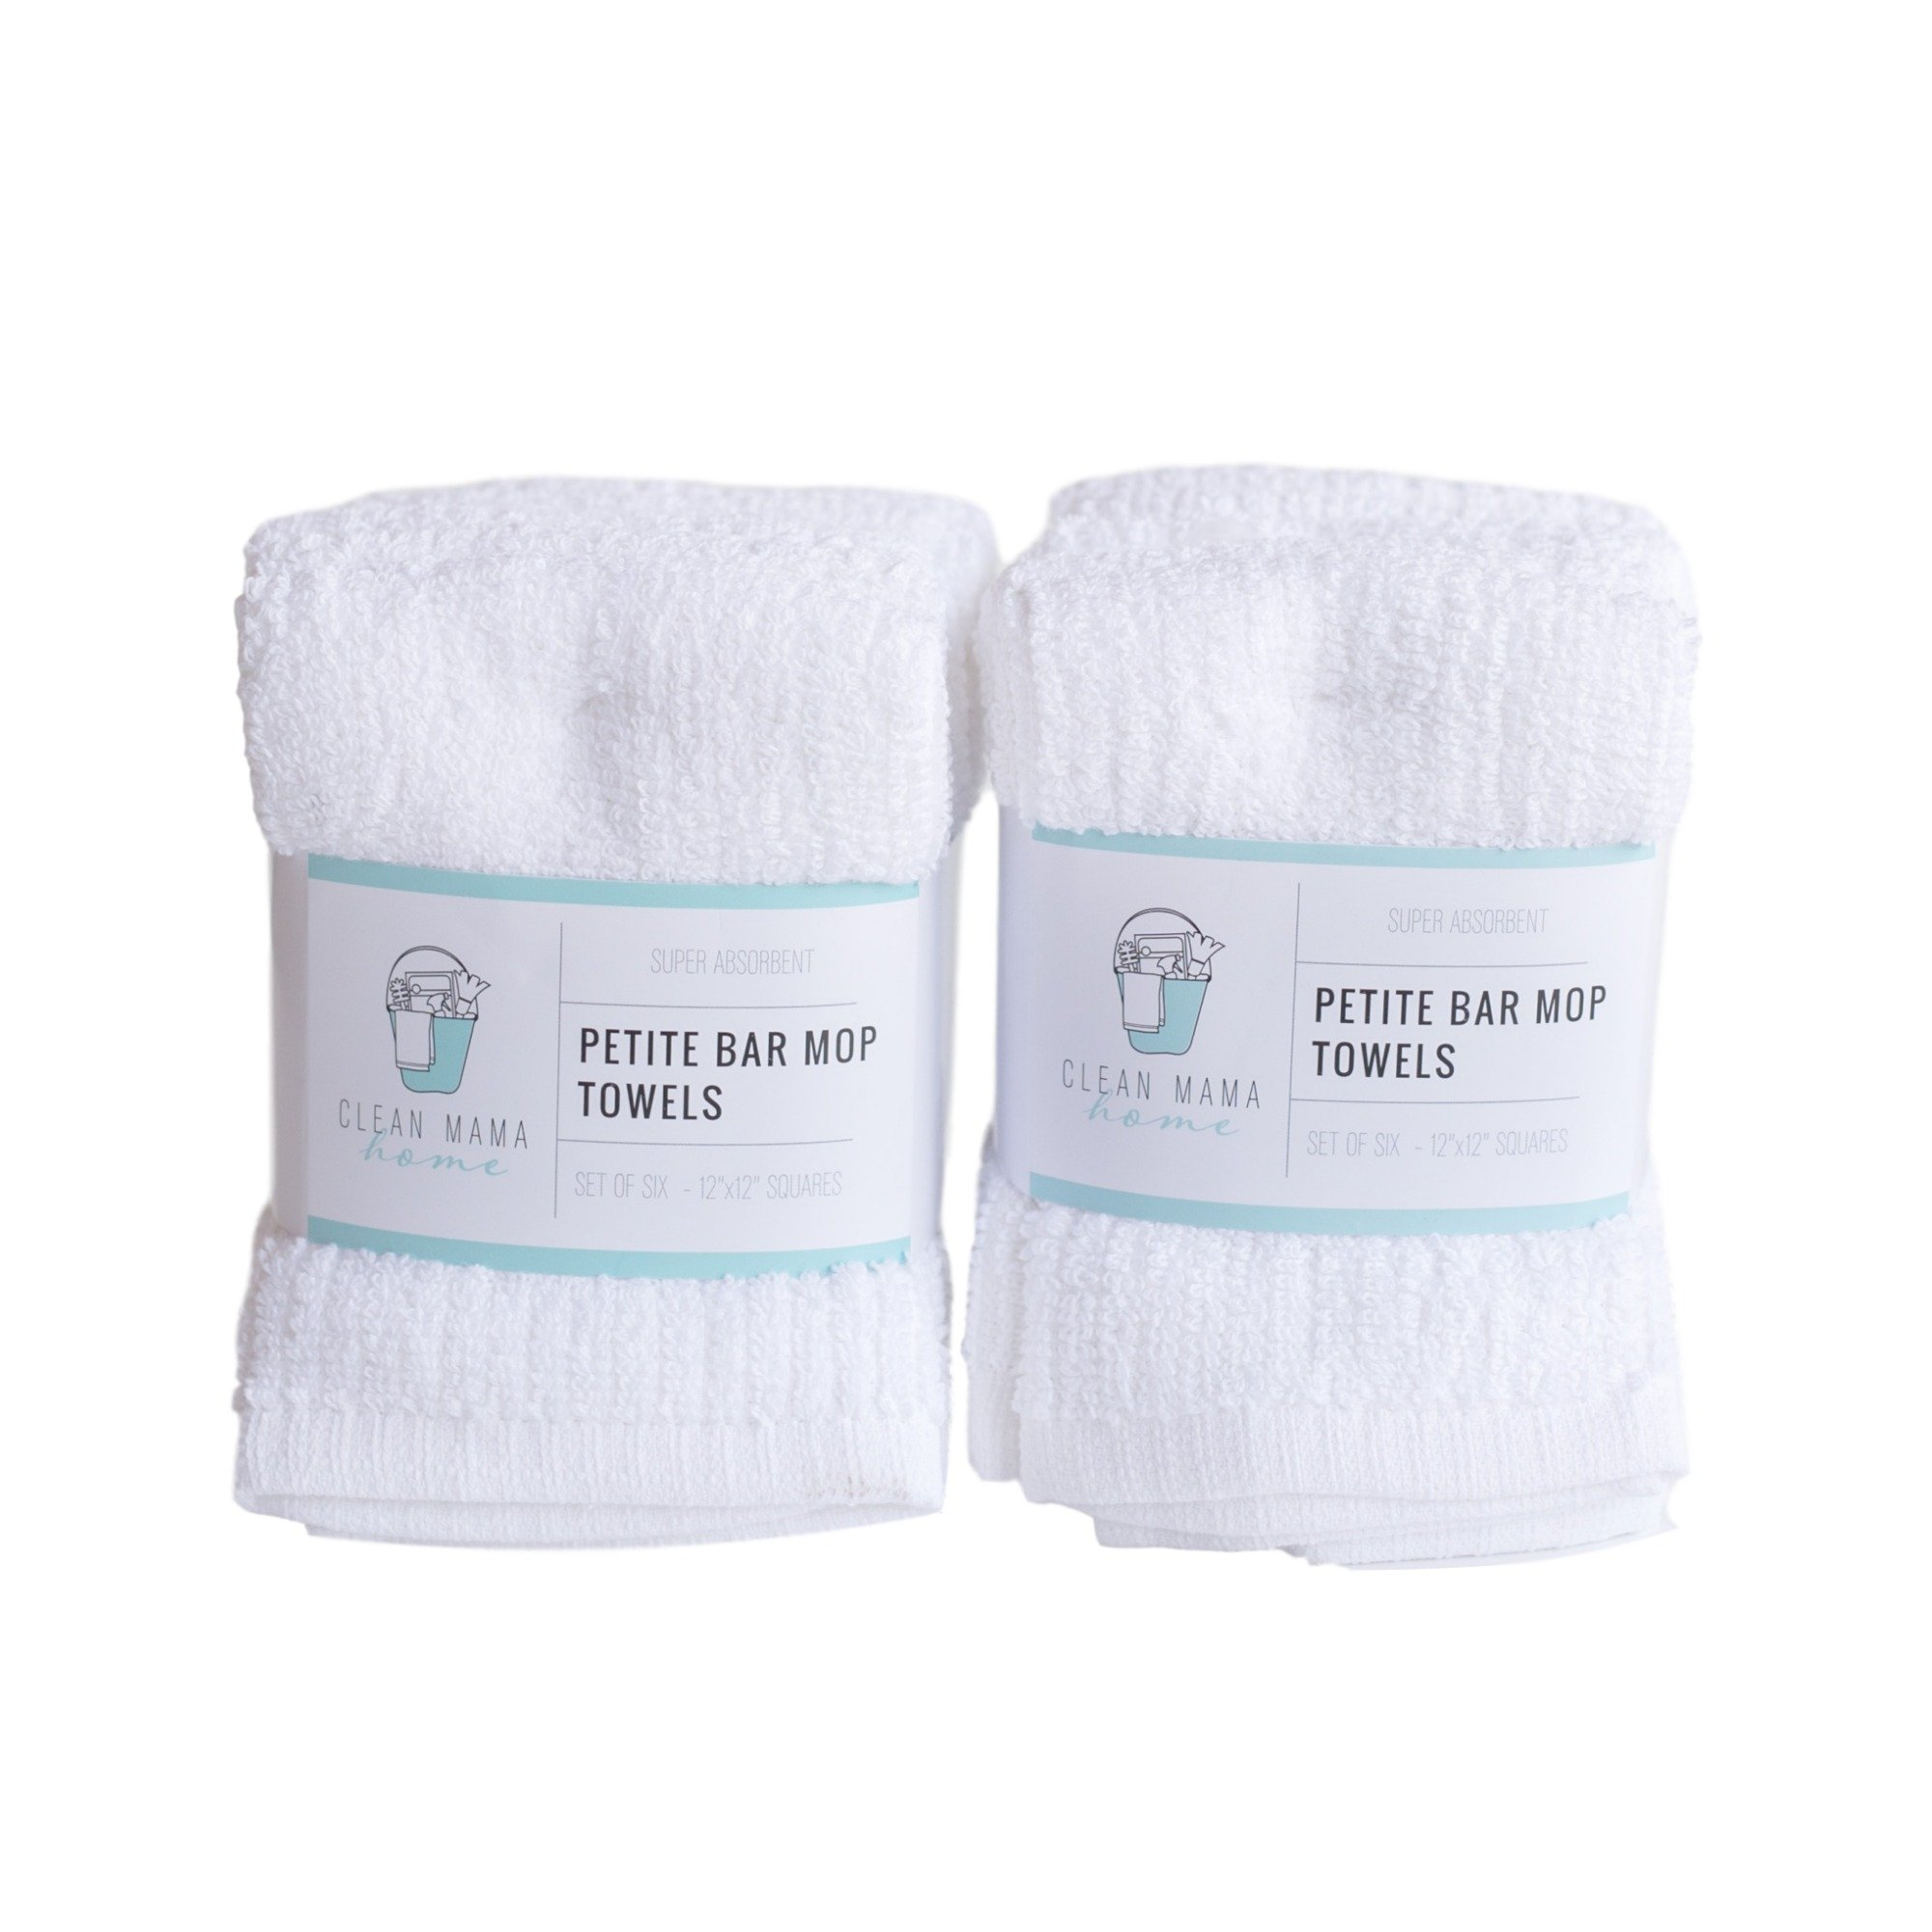 CLEAN MAMA Petite Bar Mop Cleaning Towels, White, Set of 6, 2 sets, 100% Cotton Kitchen Utility Towels